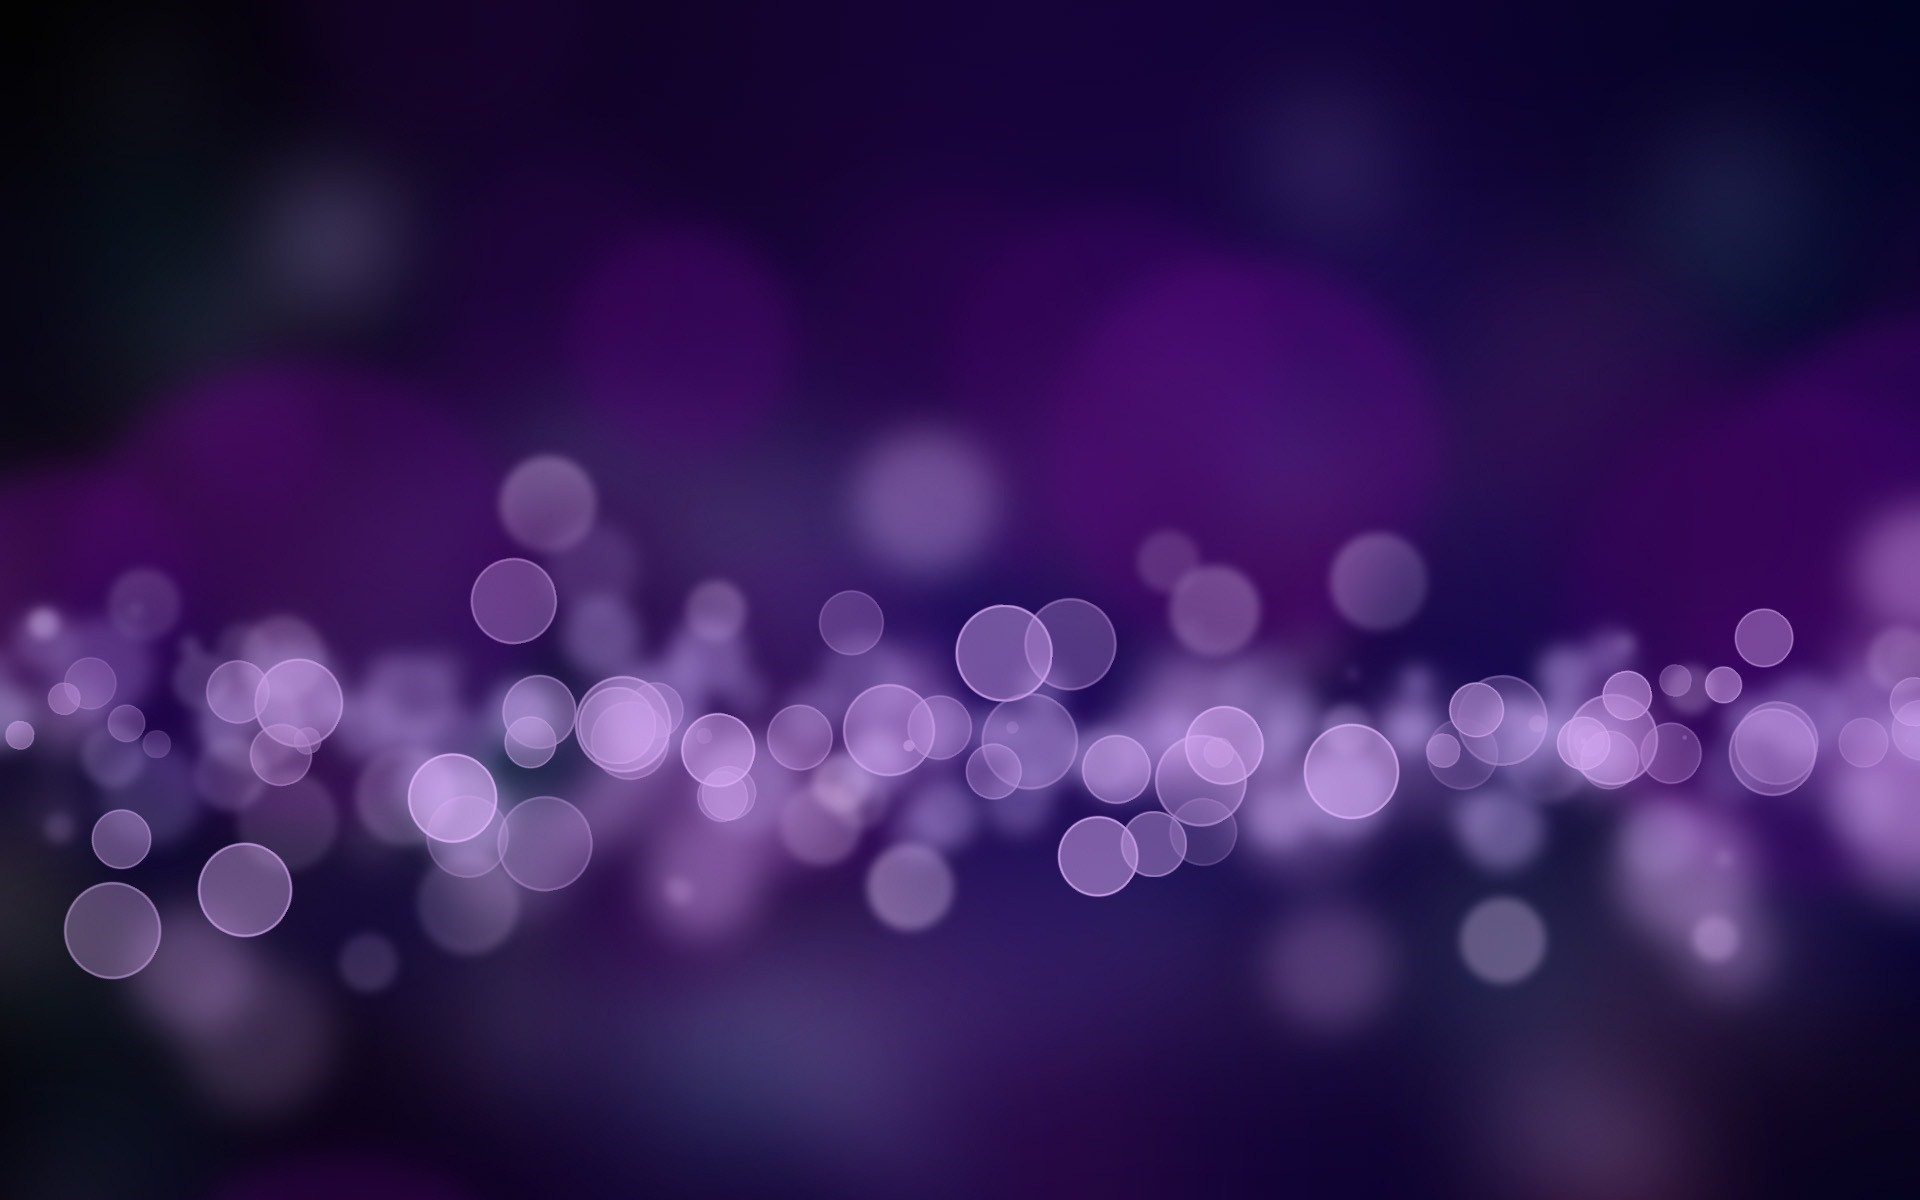 Related Wallpapers from Gold Wallpaper. Abstract Bubbles Creative